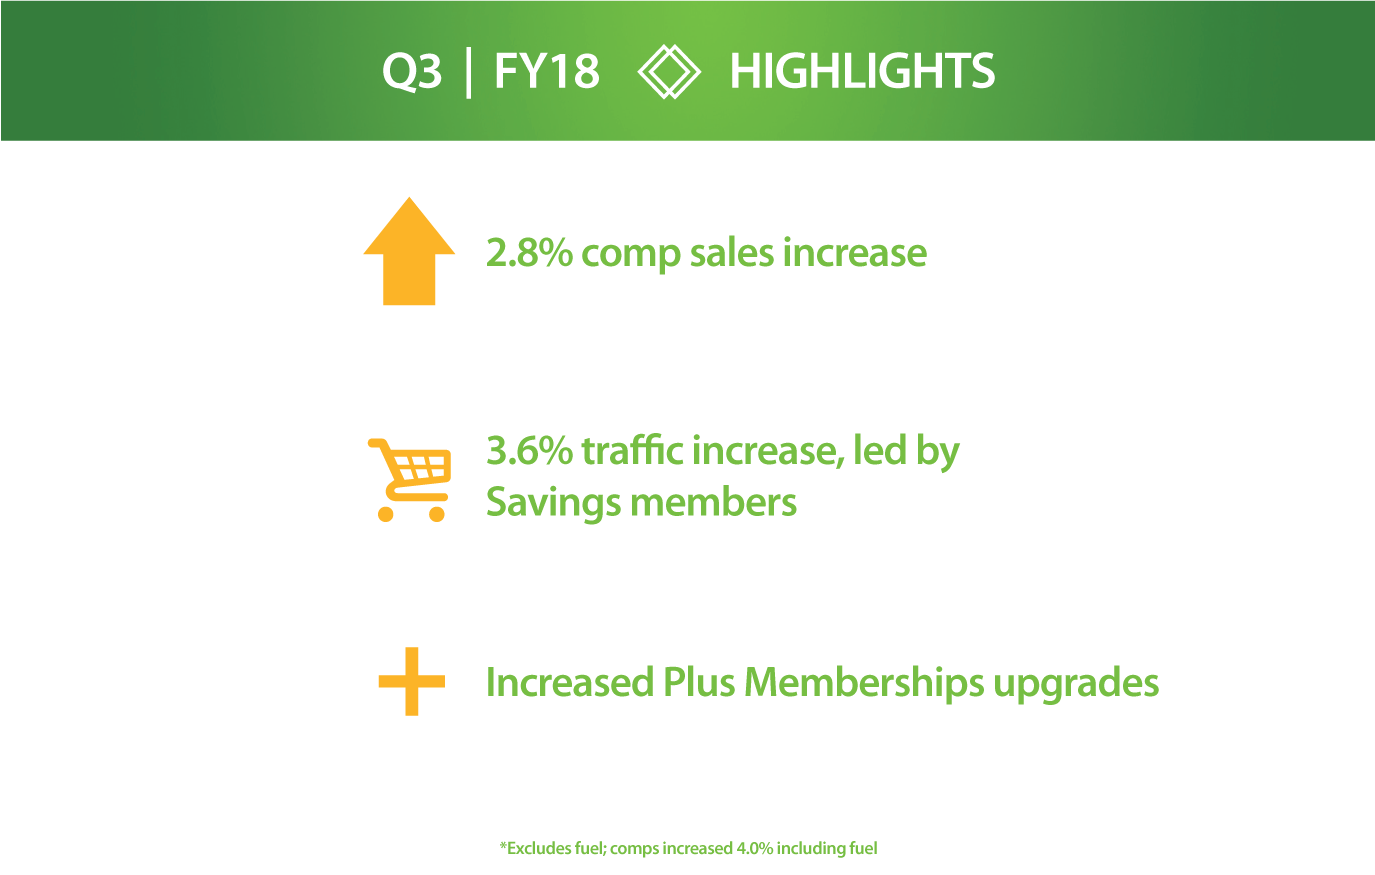 Sam's Club - FY18 Q3 Highlights